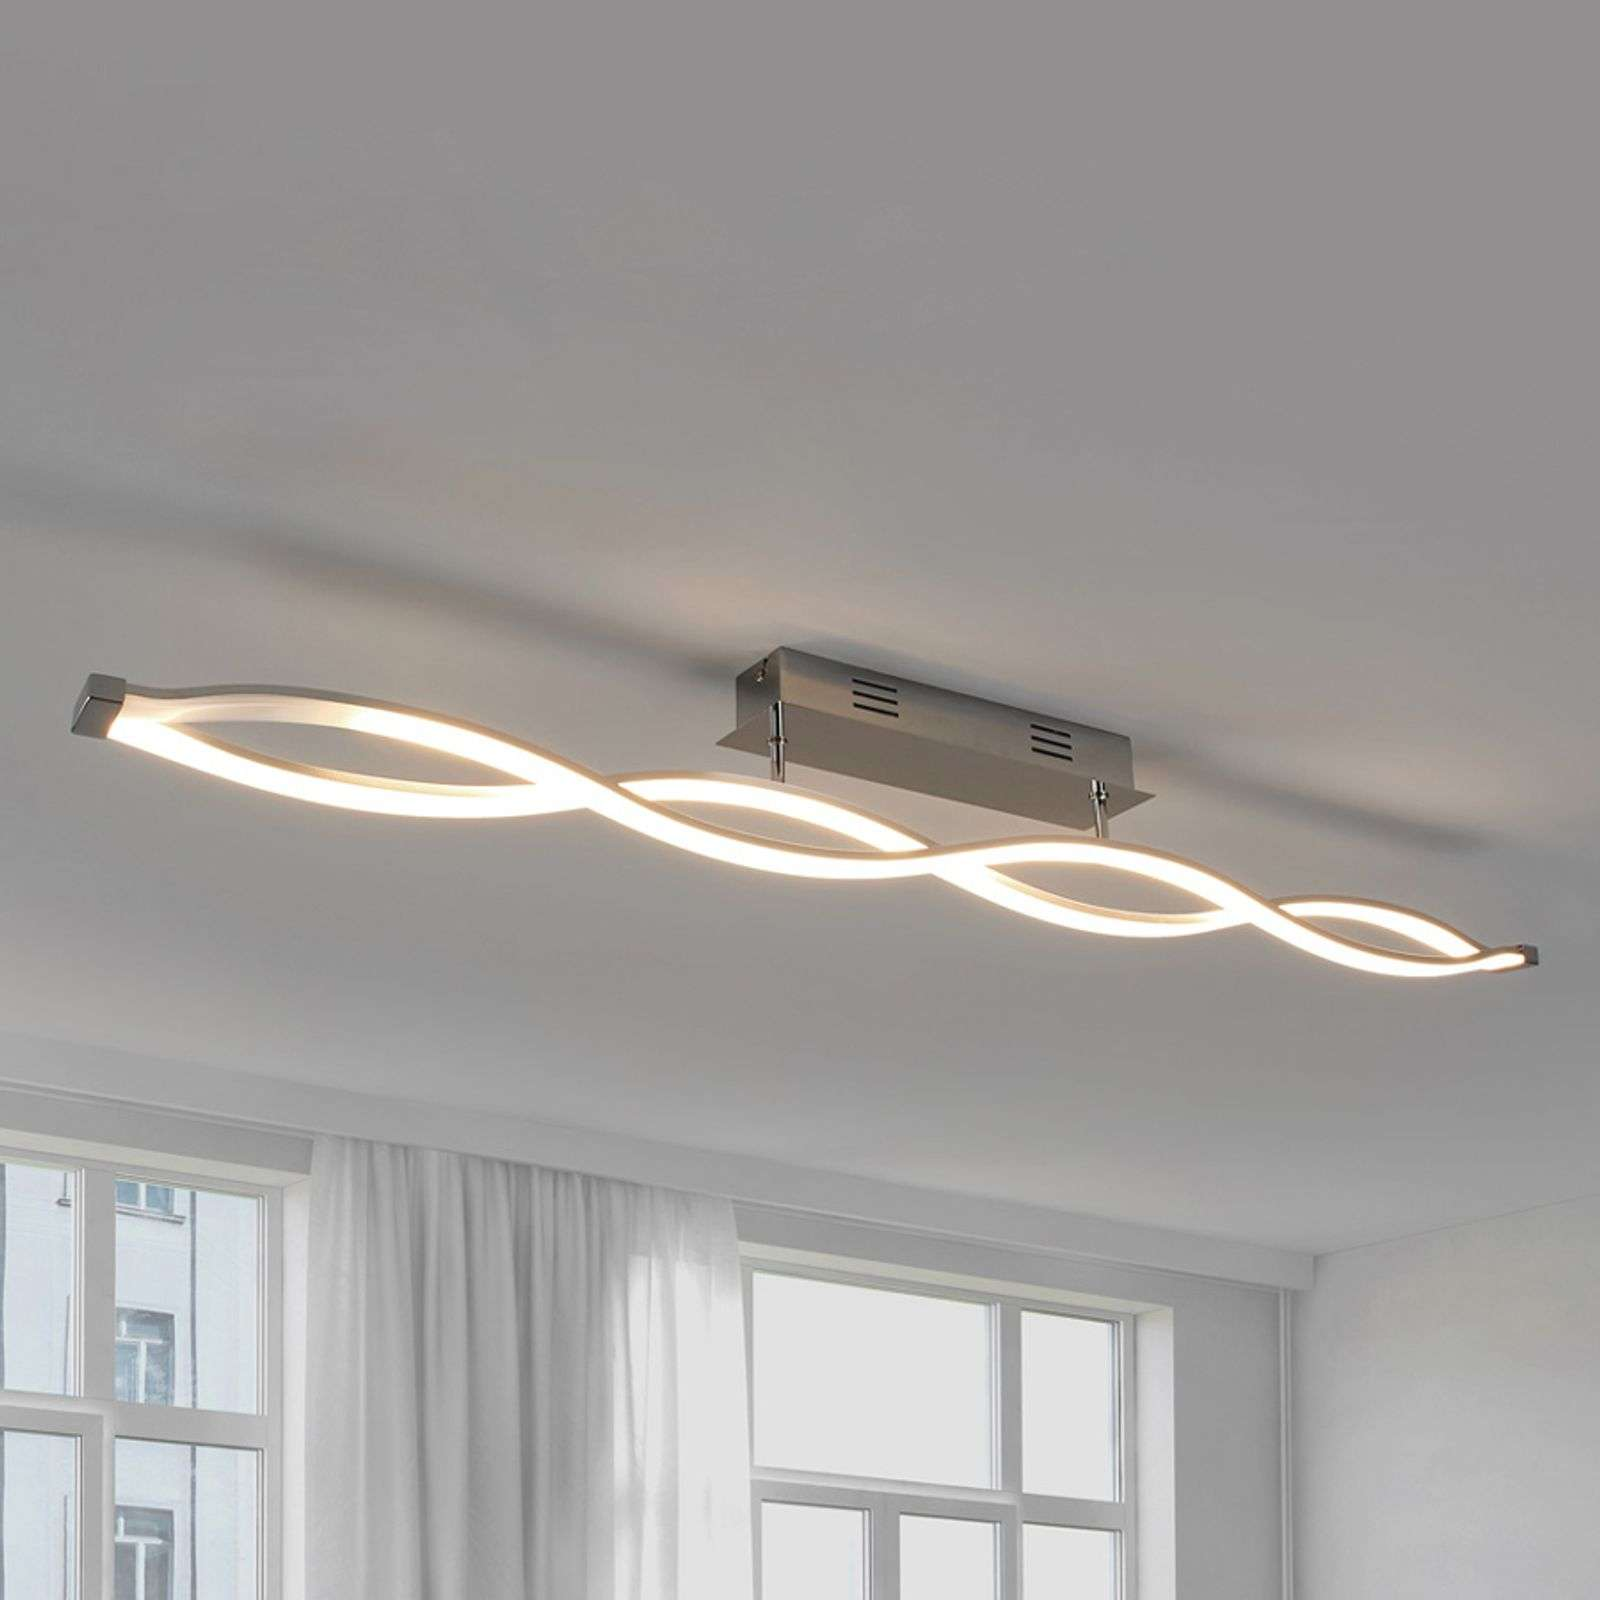 Tura - Plafonnier LED en forme de vague